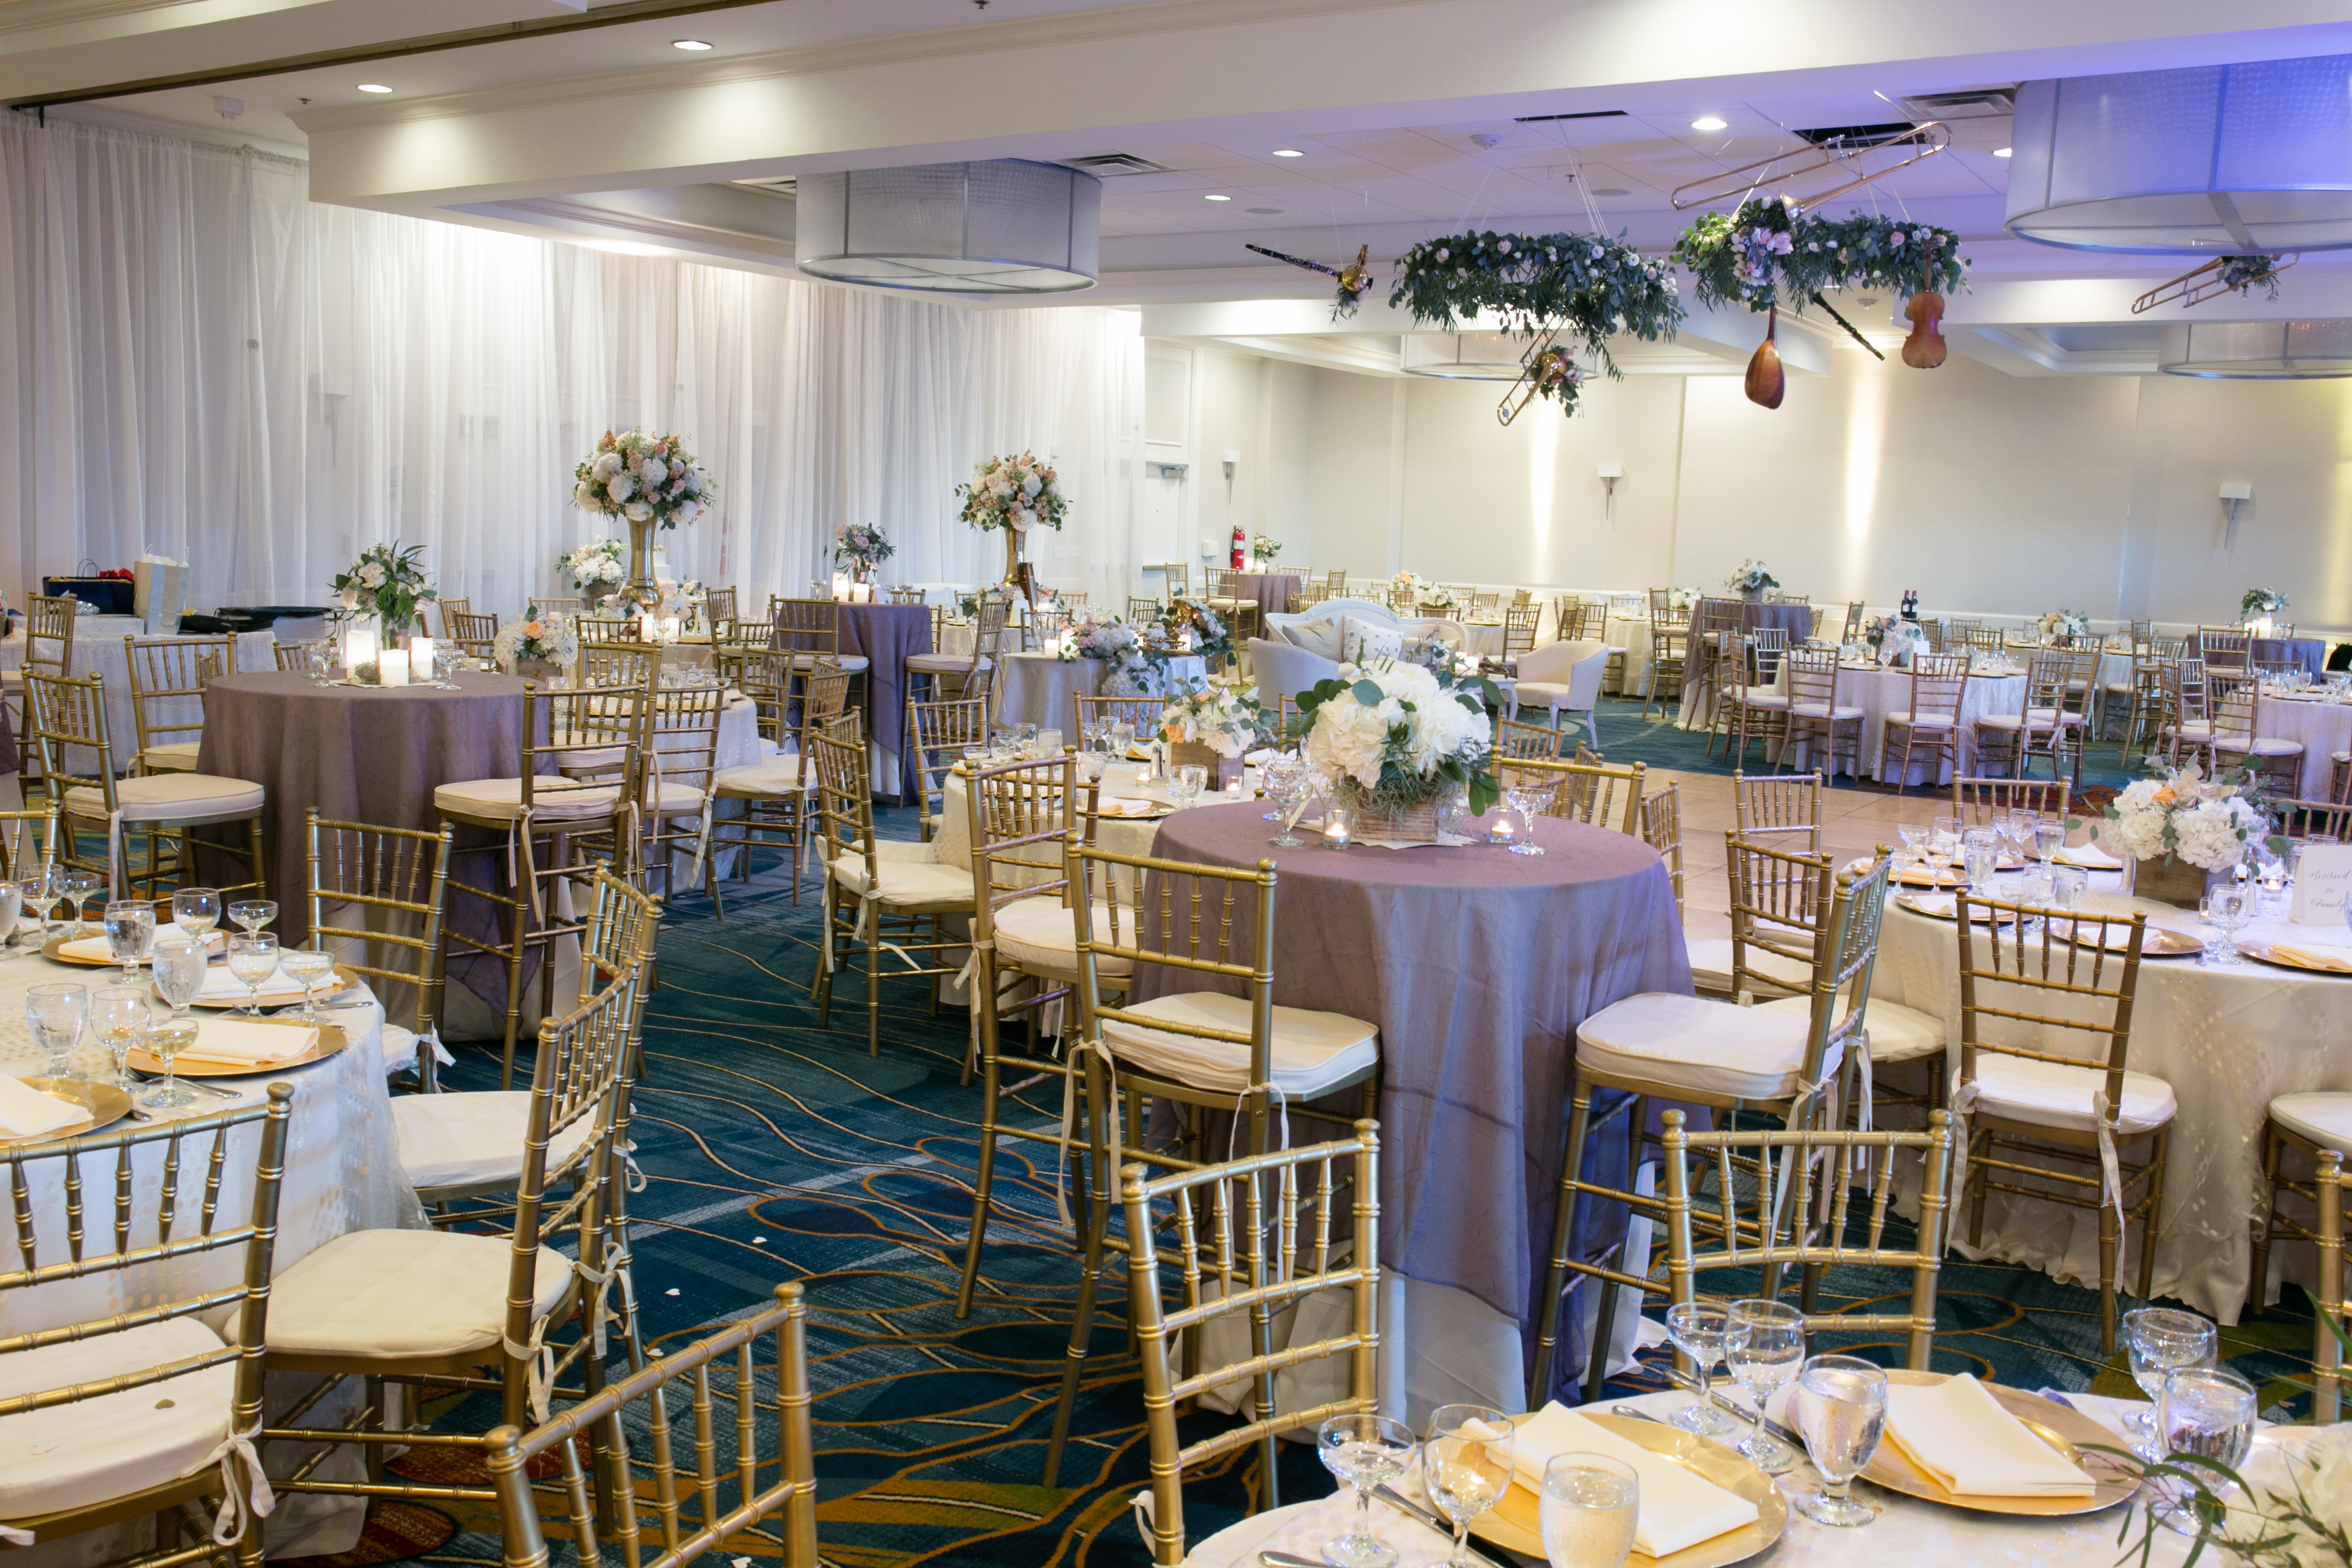 christina eric annapolis marriott waterfront wedding Party Rental Tables and Chairs Used Party Chairs and Tables